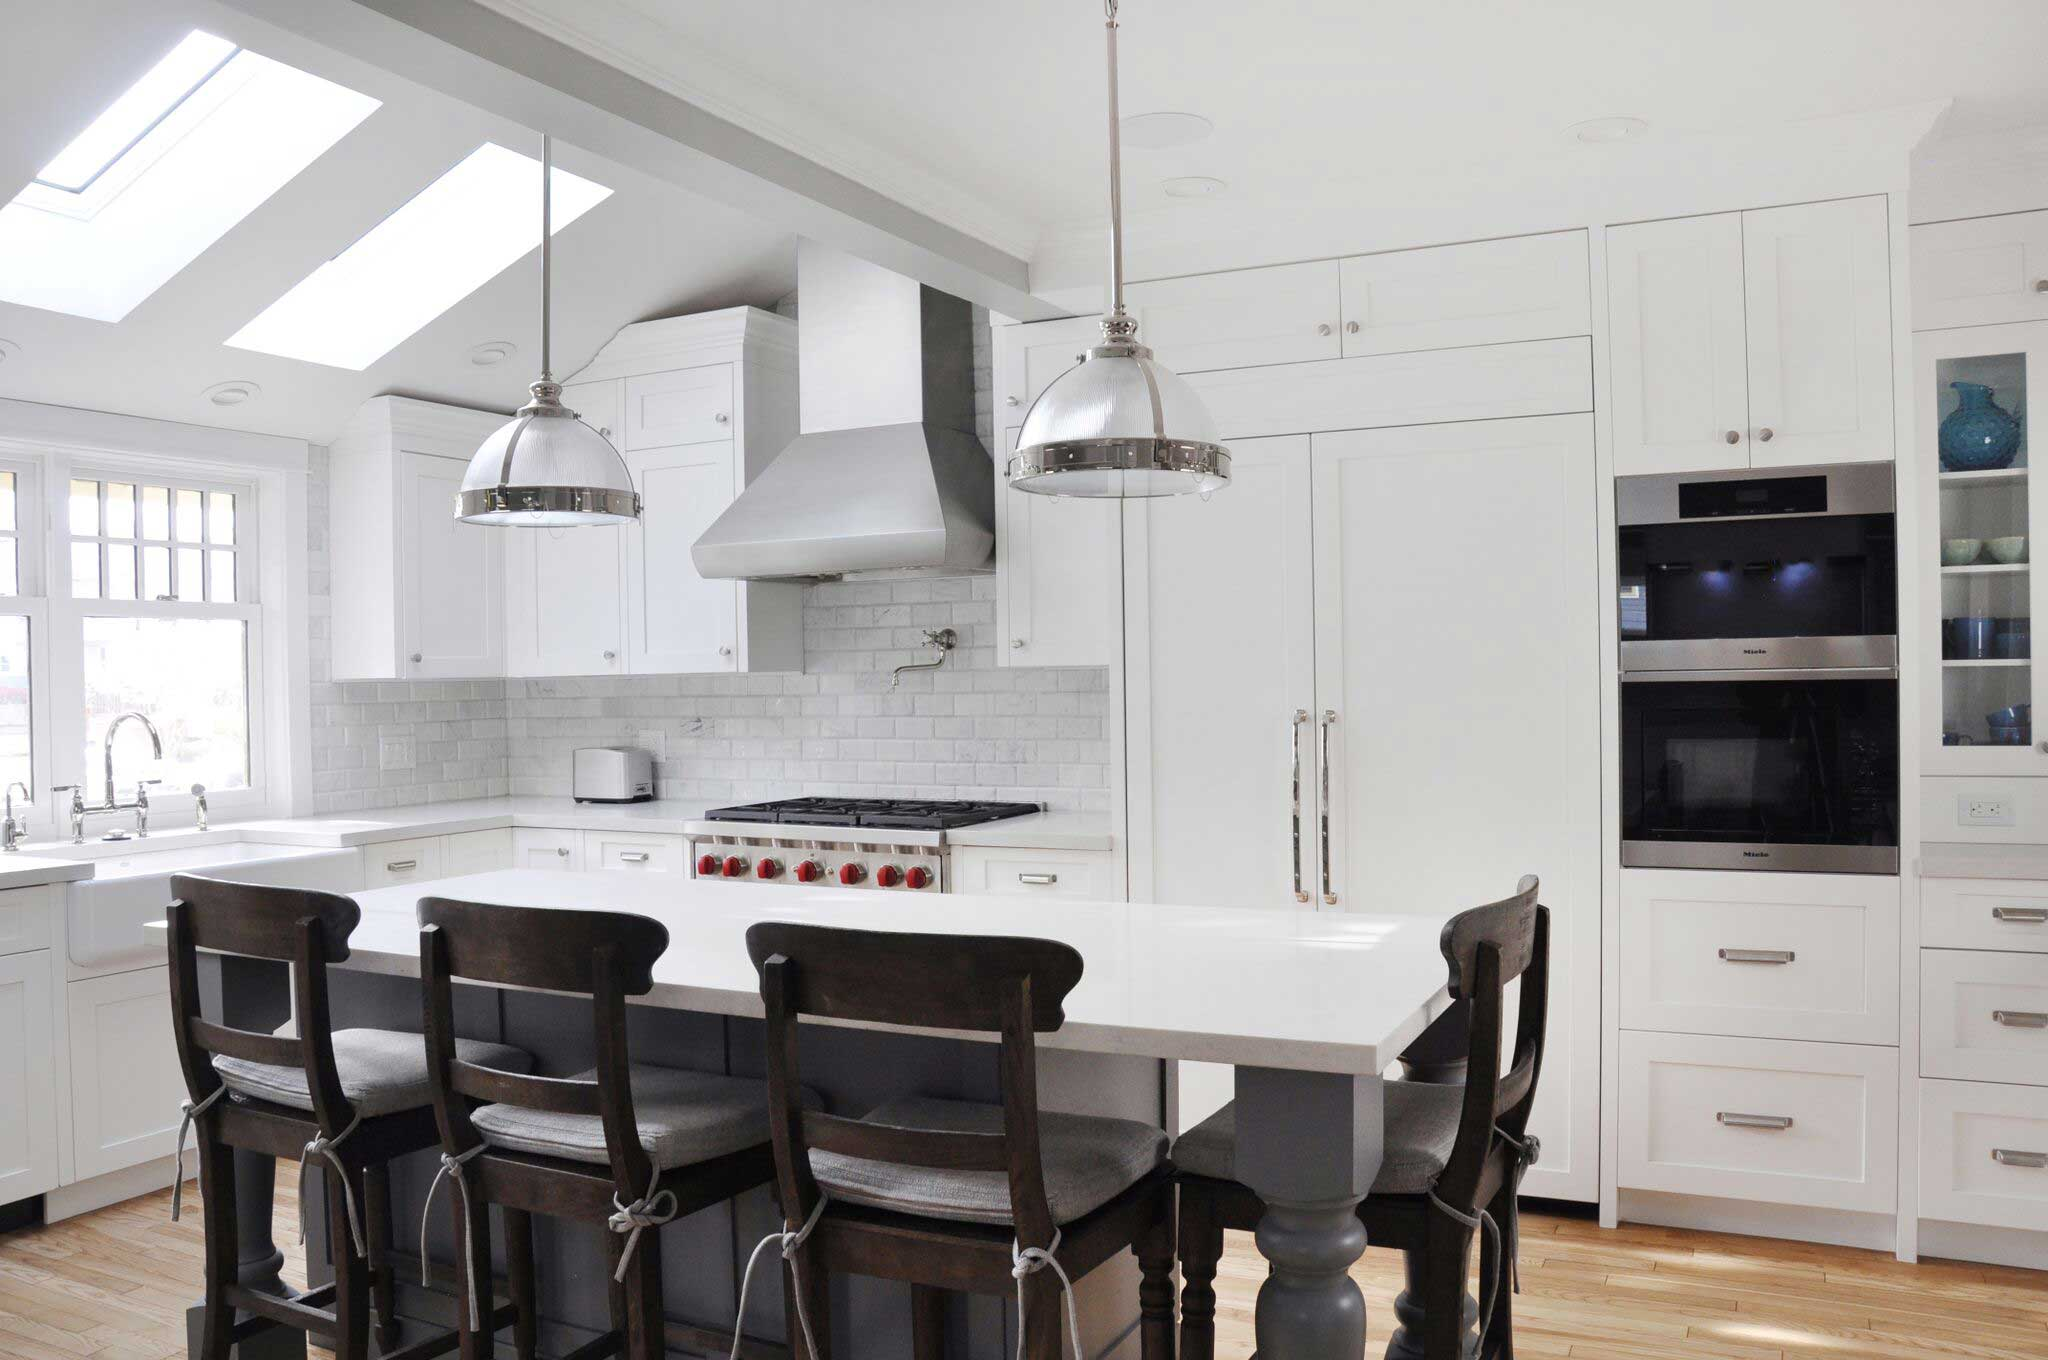 Vancouver Kitchen and Bathroom Renovations - Coordinated Kitchen and ...